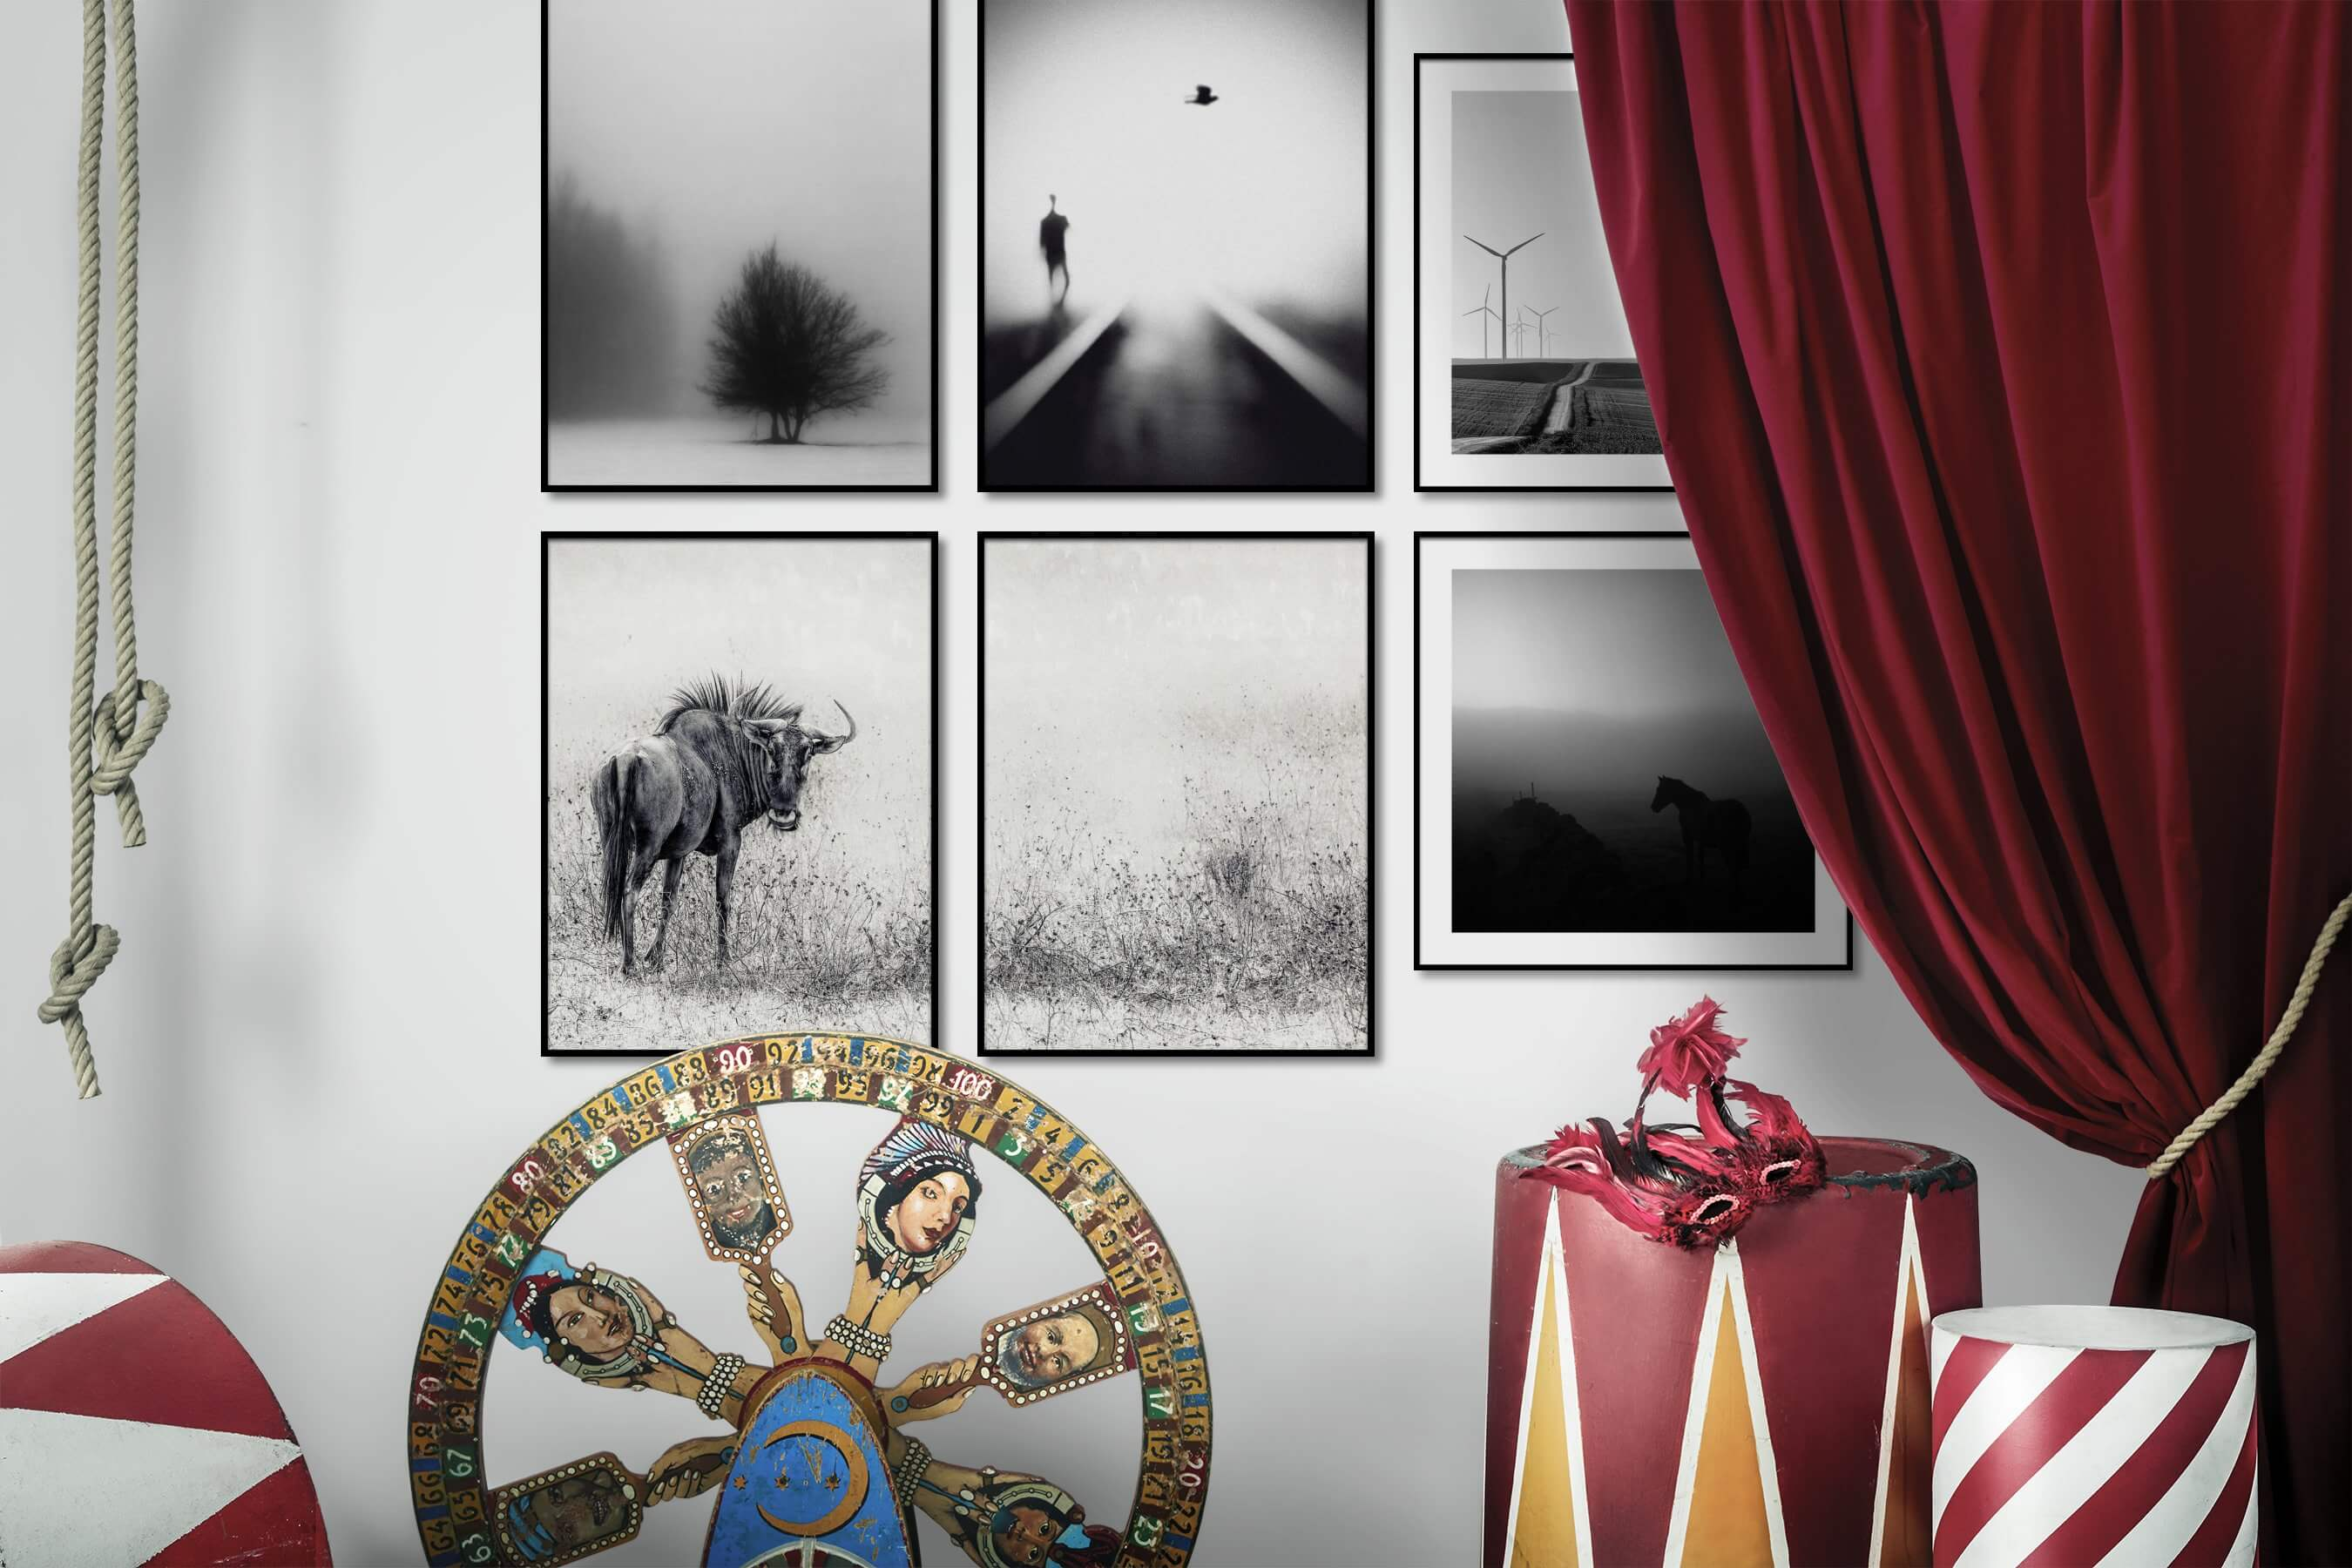 Gallery wall idea with six framed pictures arranged on a wall depicting Black & White, For the Minimalist, Nature, For the Moderate, Animals, and Country Life